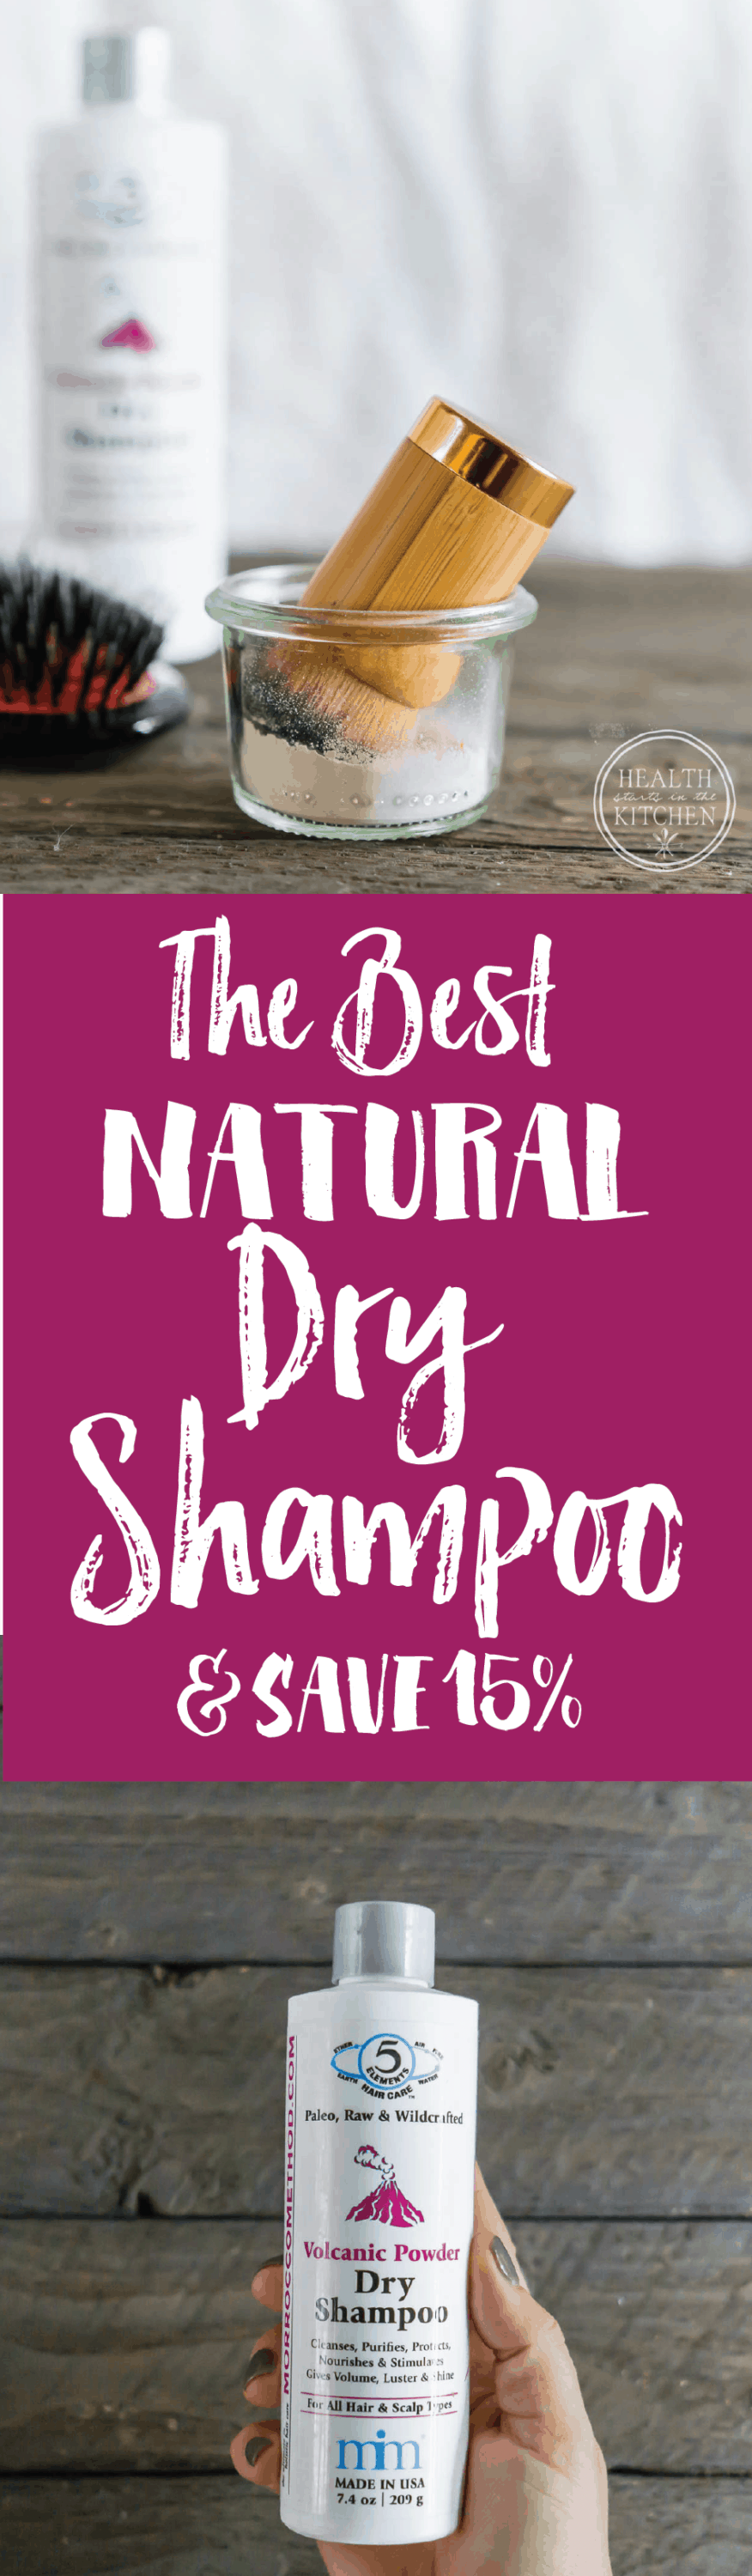 The Best Natural Dry Shampoo {and save 15%}